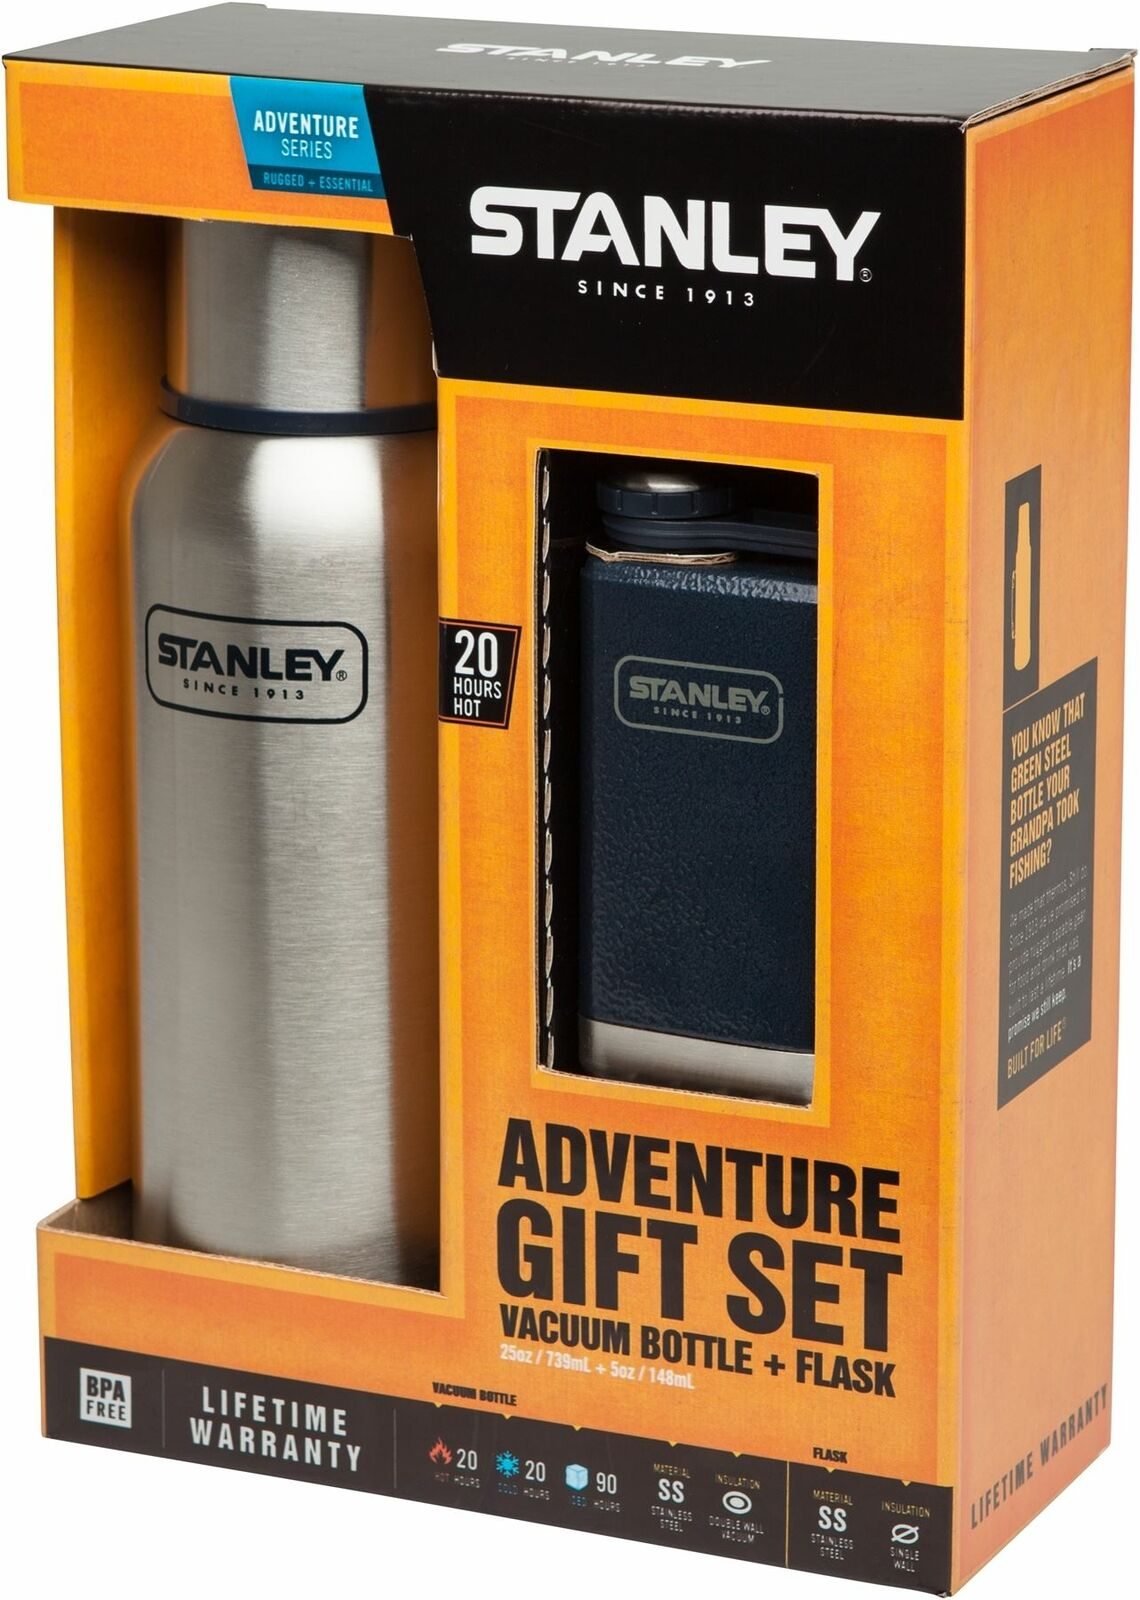 Stanley Classic Adventure Gift Set comes with Vacuum Bottle Stainles Steel Flask